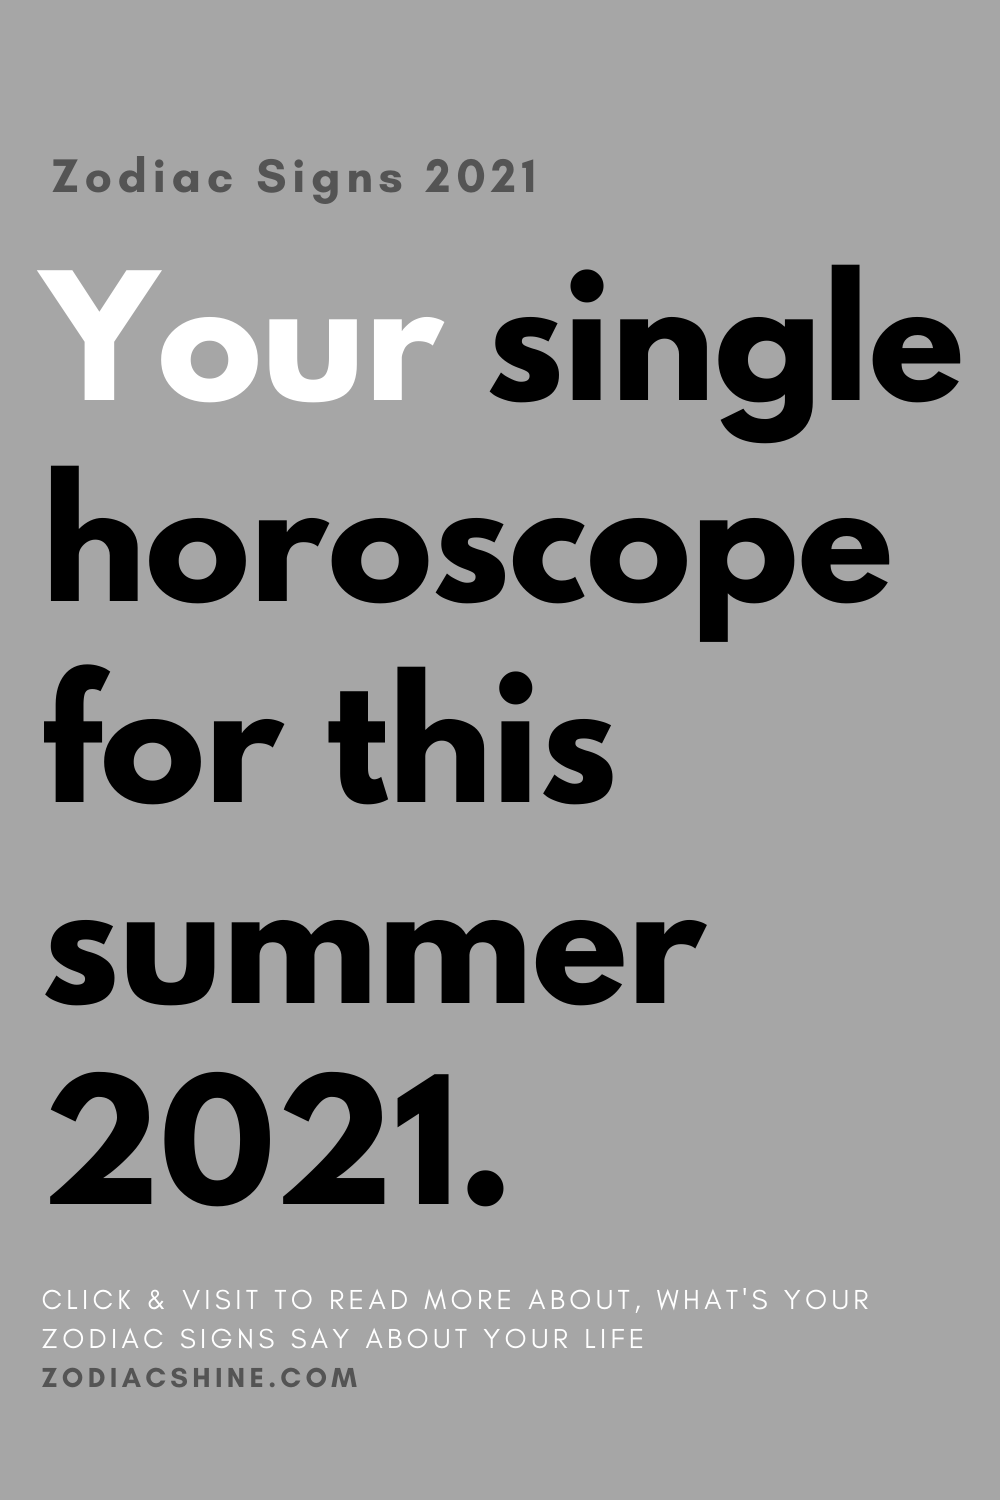 Your single horoscope for this summer 2021